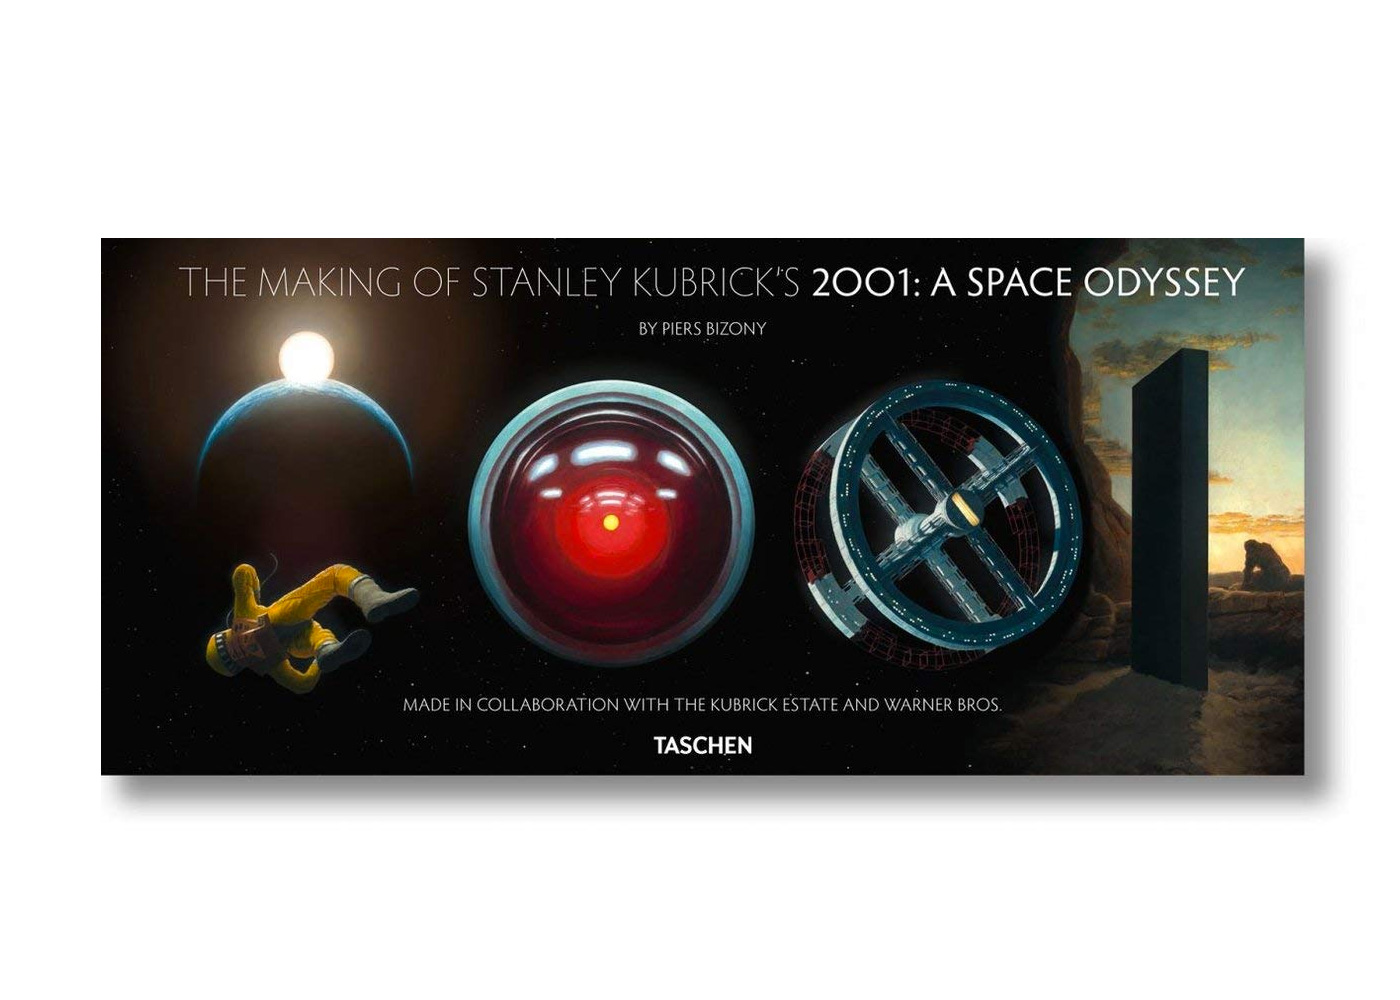 The Making of Stanley Kubrick's '2001: A Space Odyssey' at werd.com